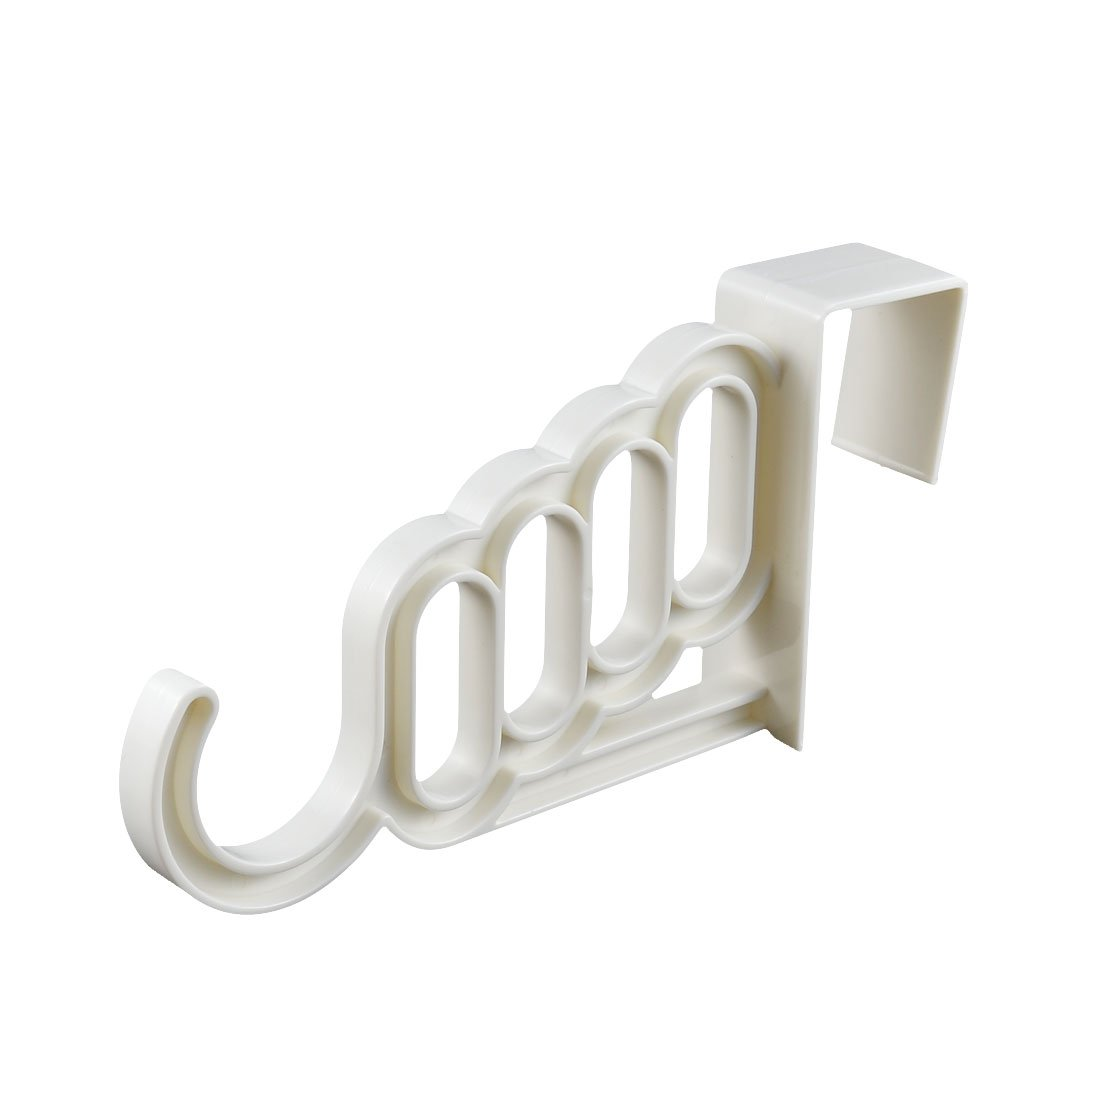 low-cost uxcell Plastic Indoor Office Over Door Wardrobe Clothes Hook 2pcs White